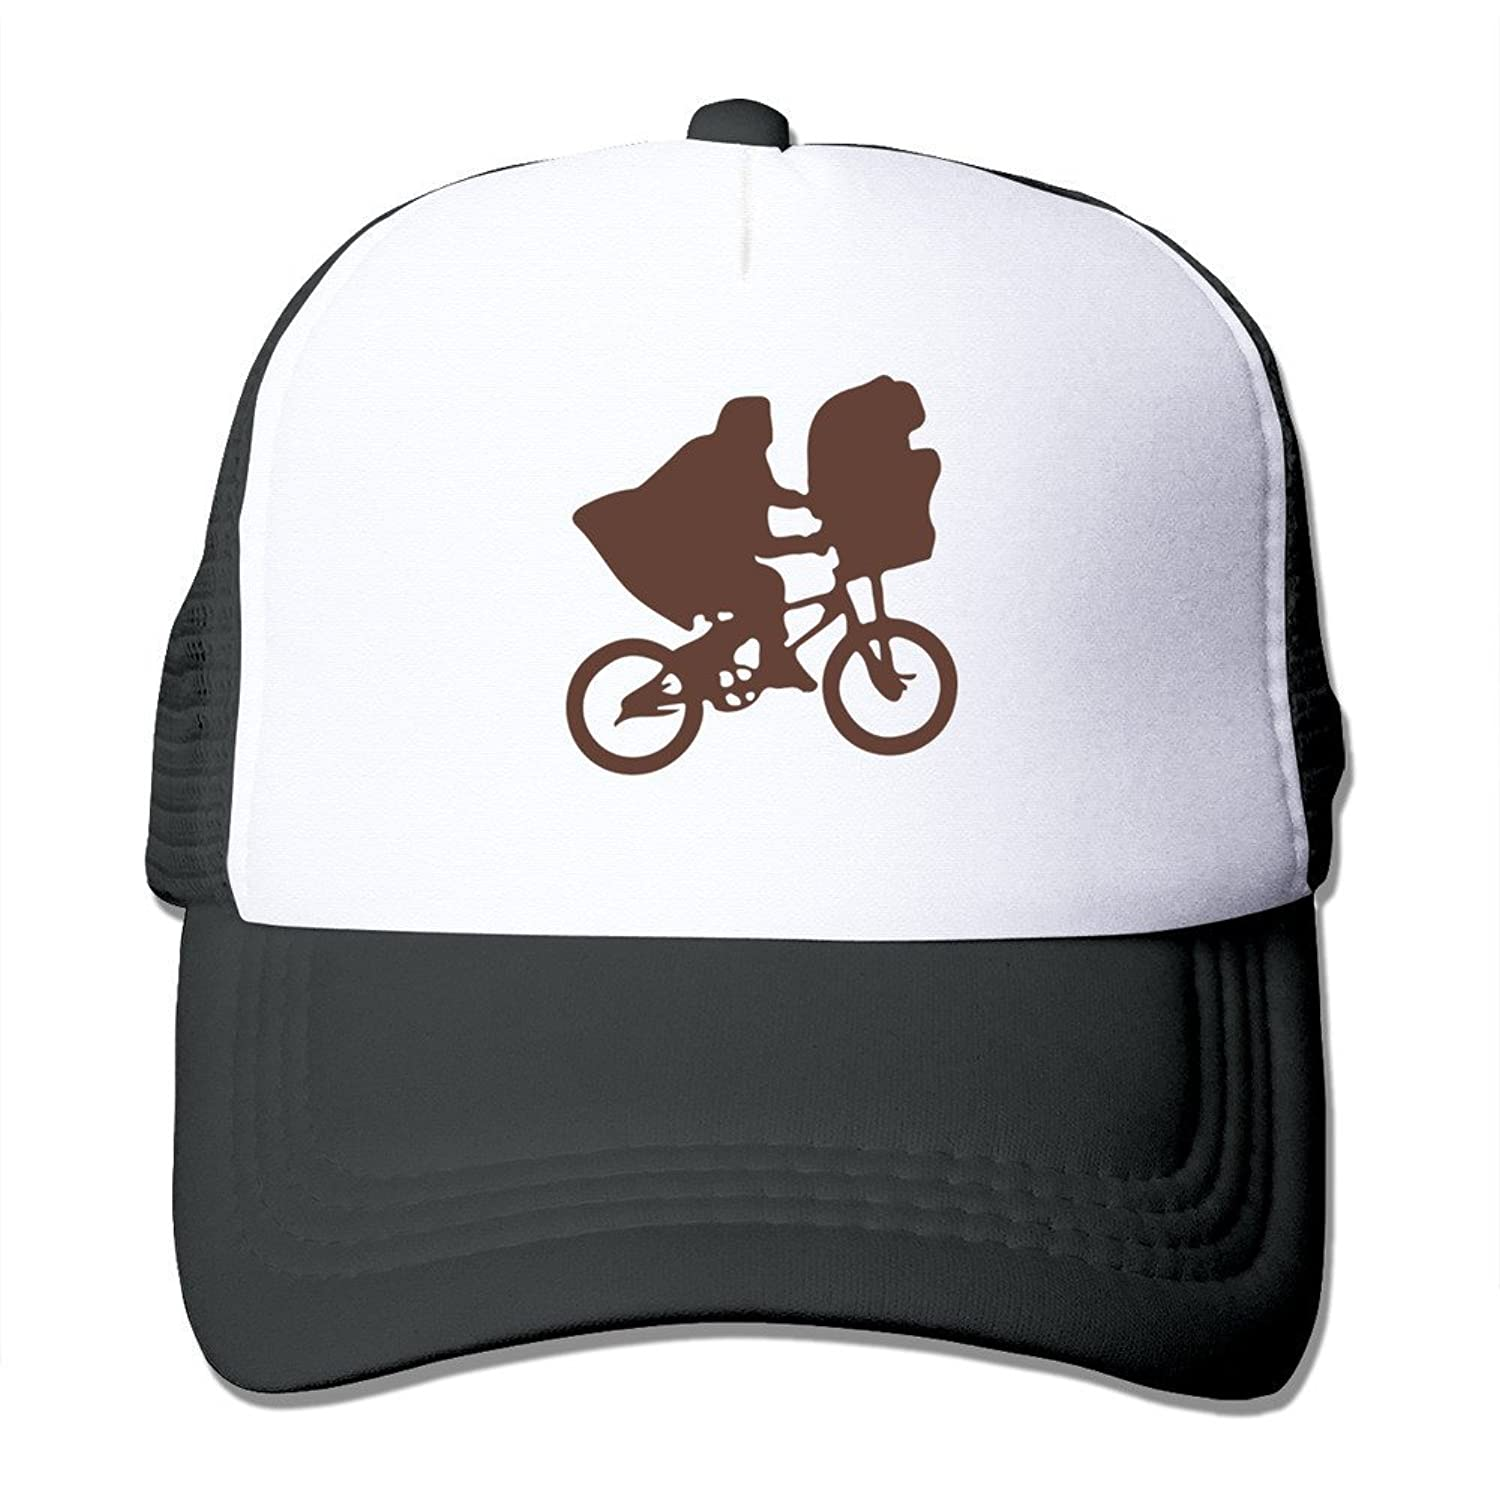 Bro-Custom Ride Bicycle Alien Outline Hiking Hat Caps One Size Fit All Black